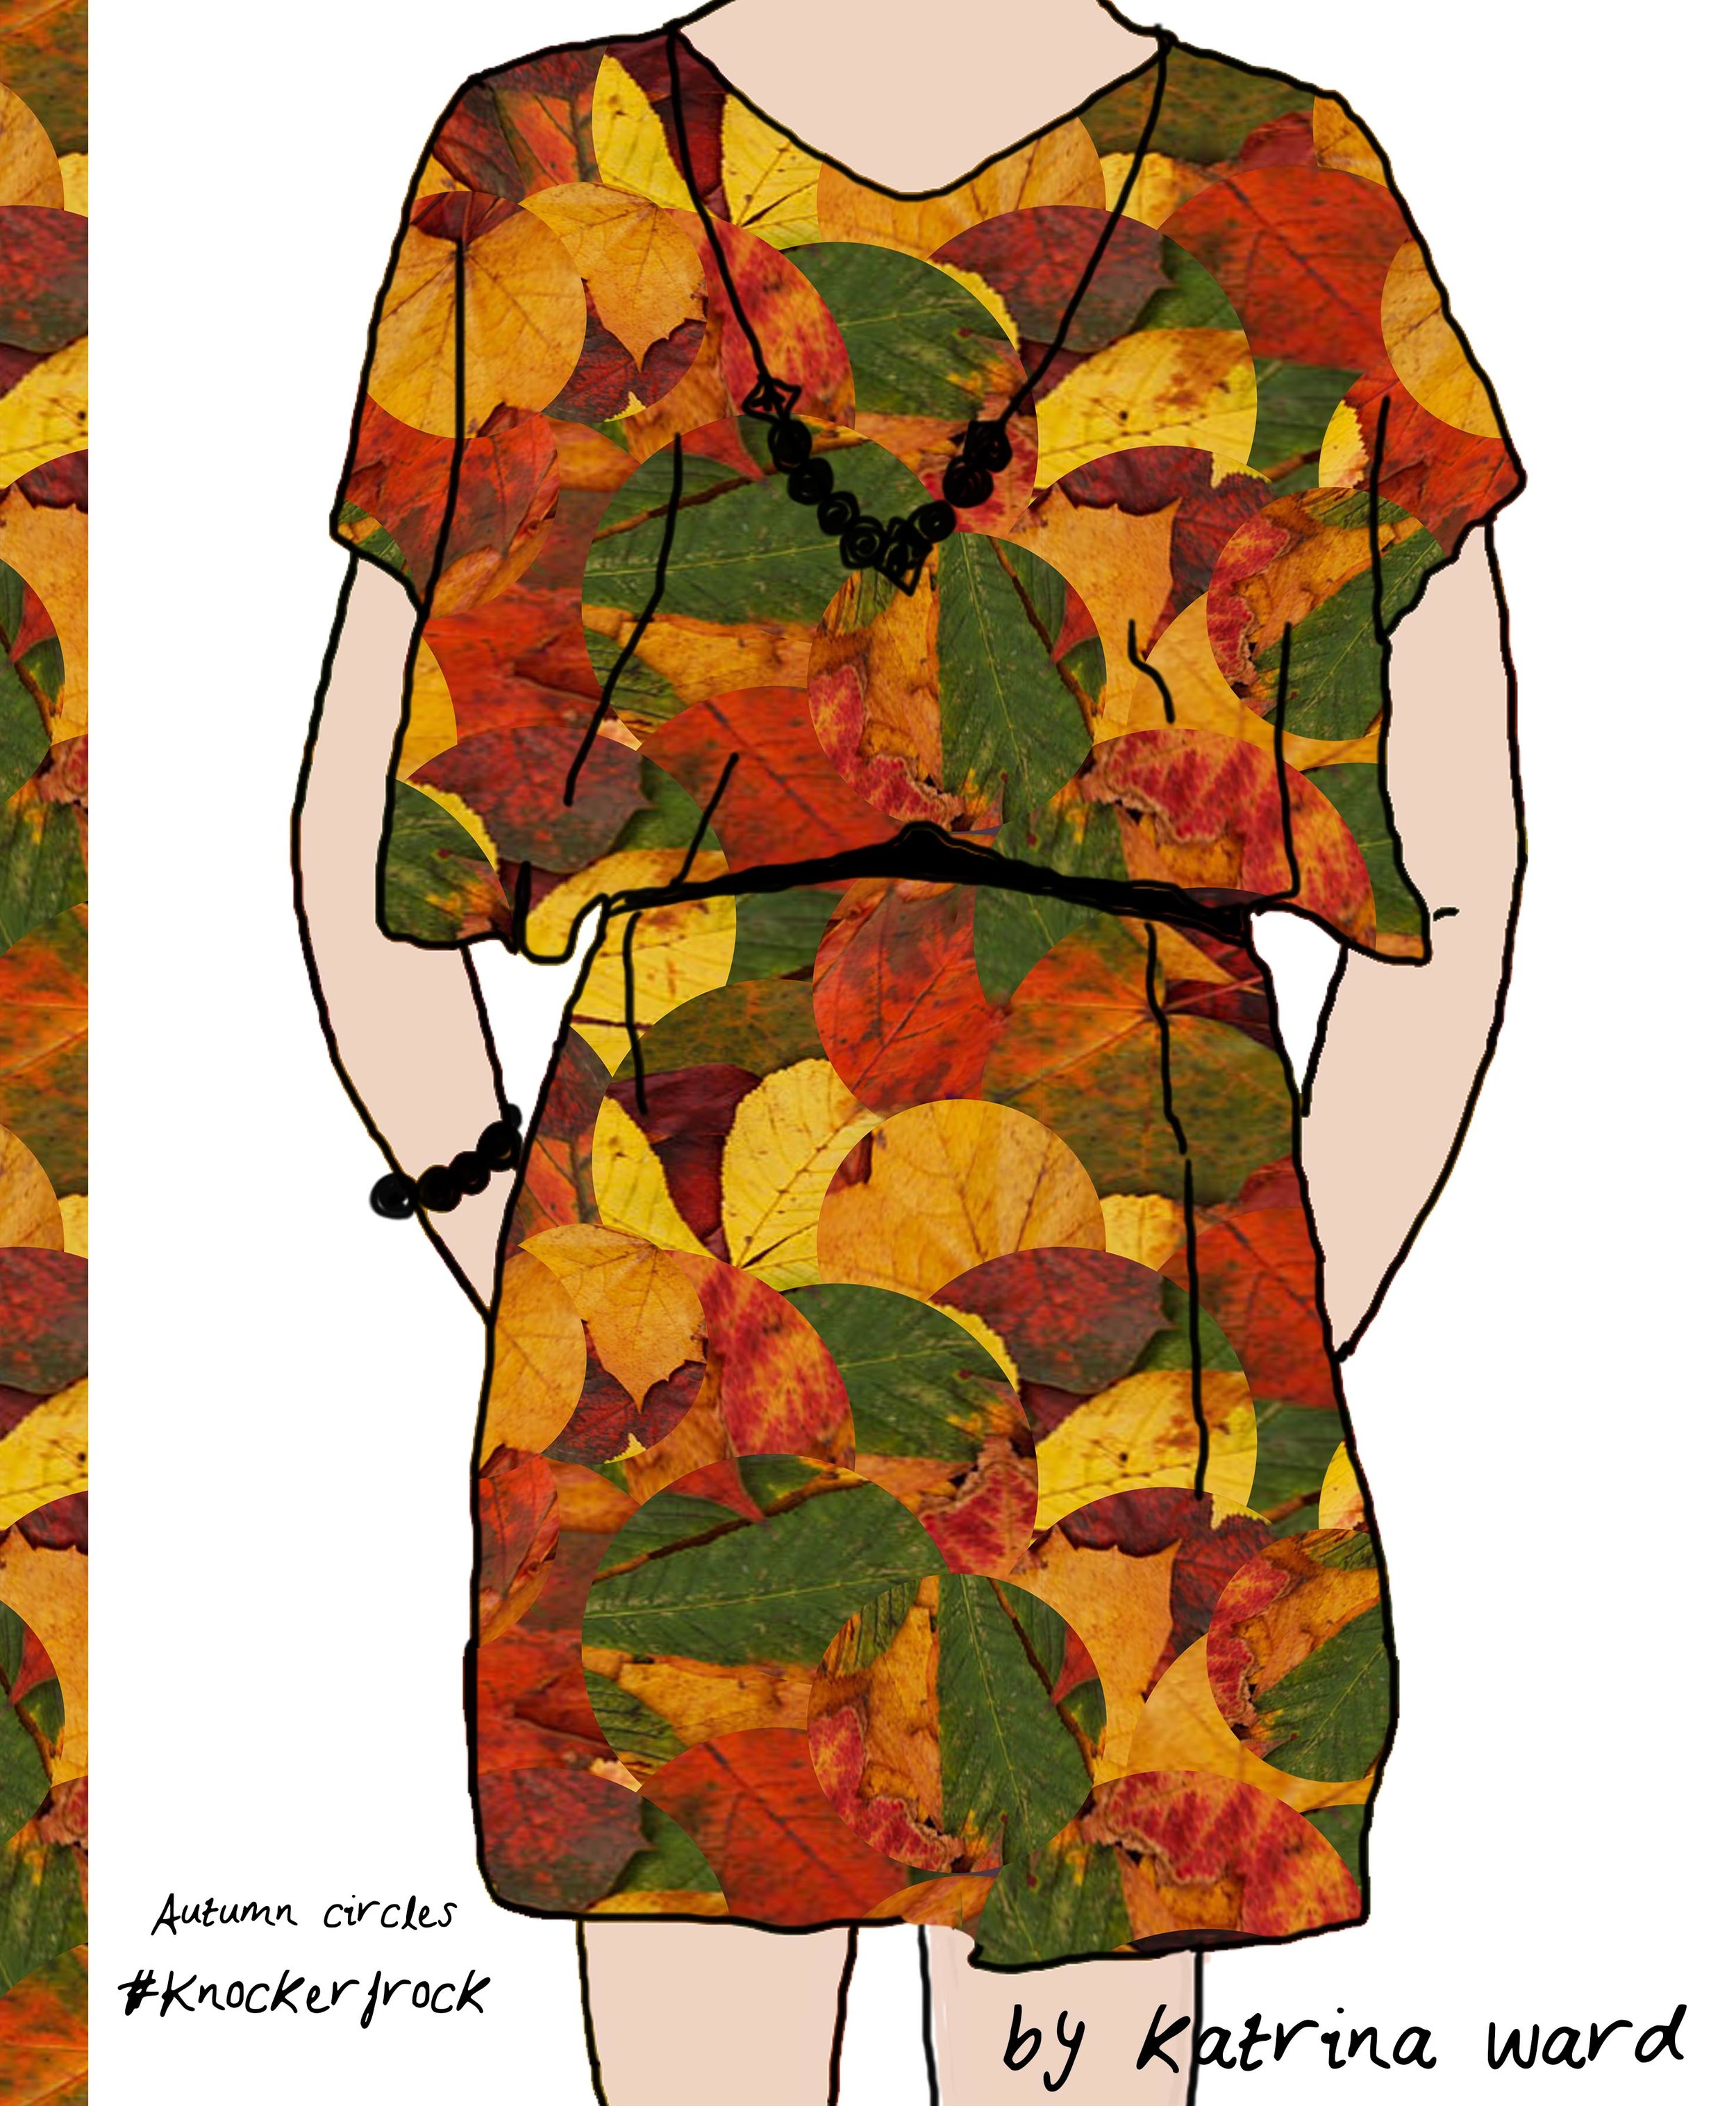 autumn circles knockerfrock.jpg